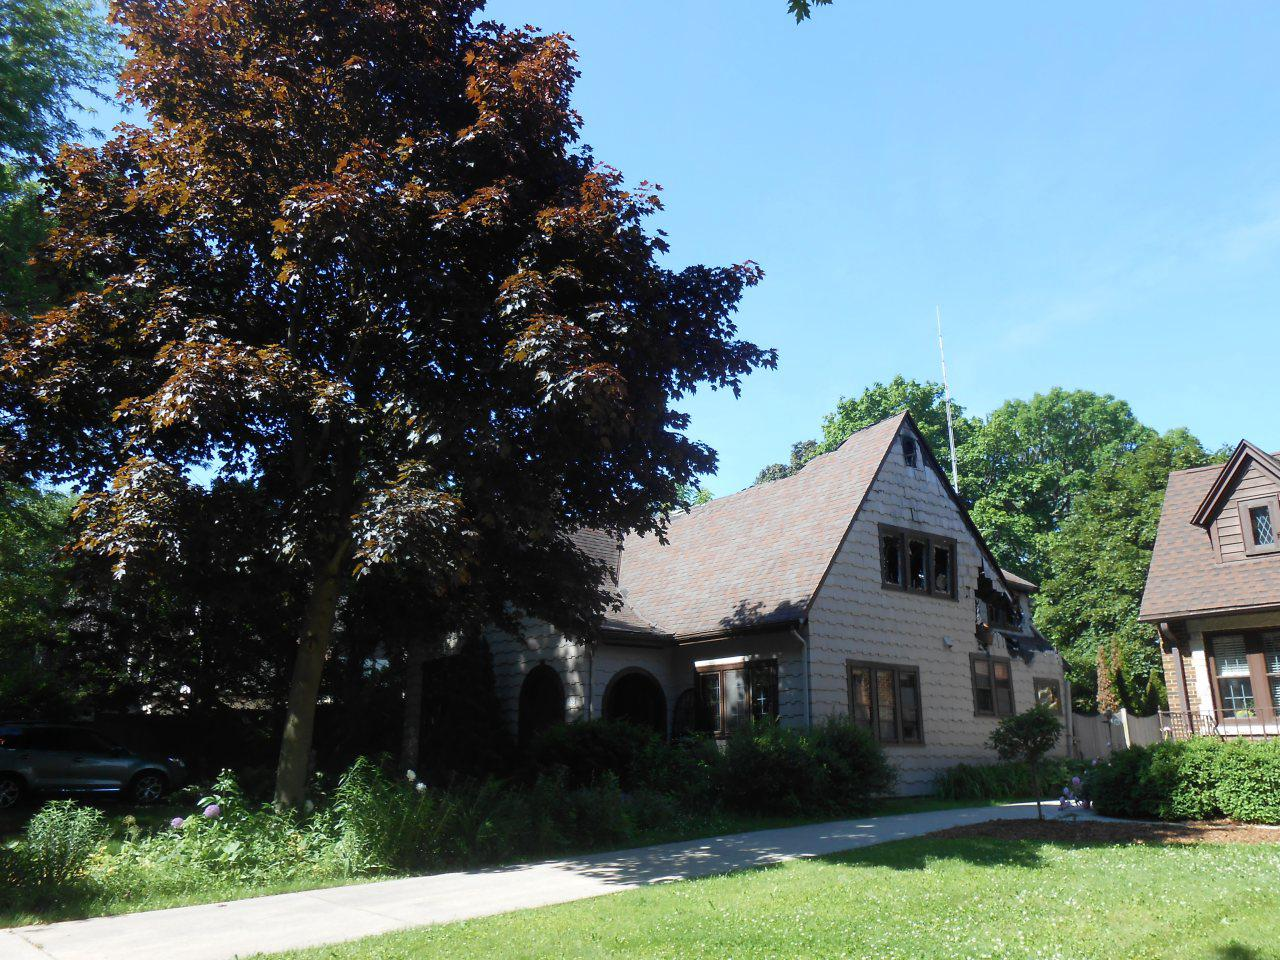 4753 N Newhall St STREET, WHITEFISH BAY, WI 53211